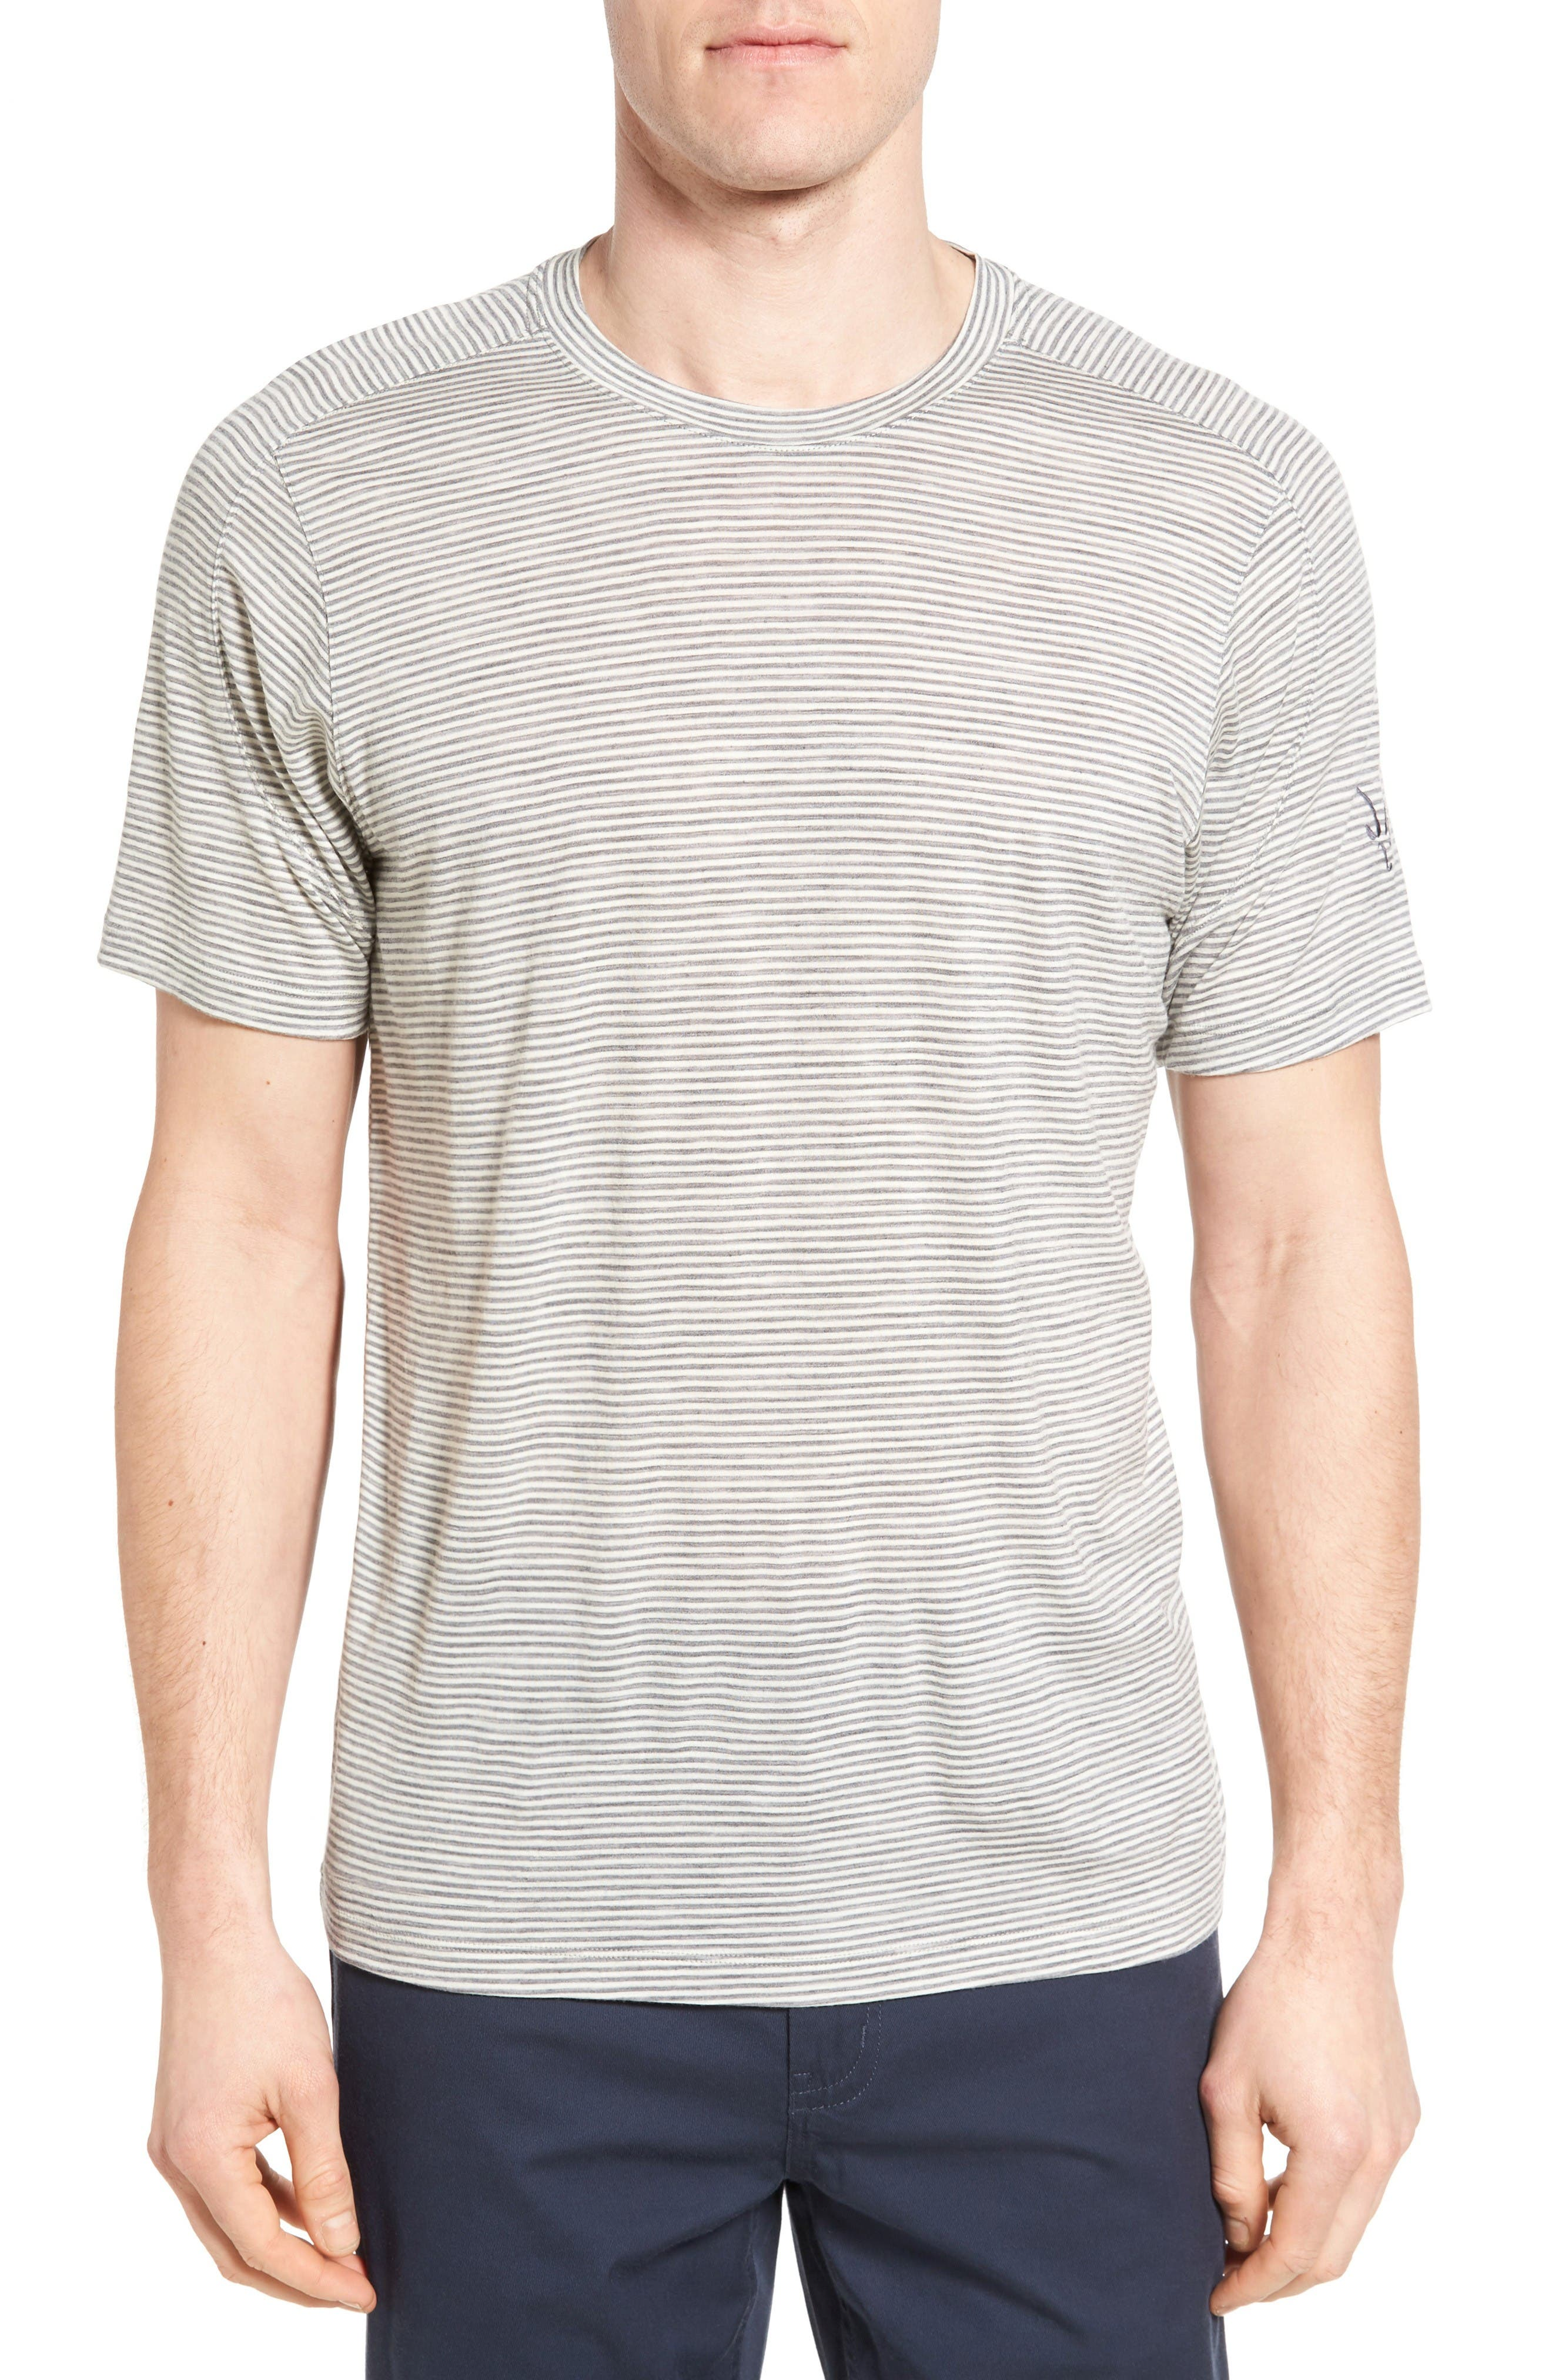 Regular Fit Overdyed Merino Wool T-Shirt,                         Main,                         color, Birch Heather Stripe